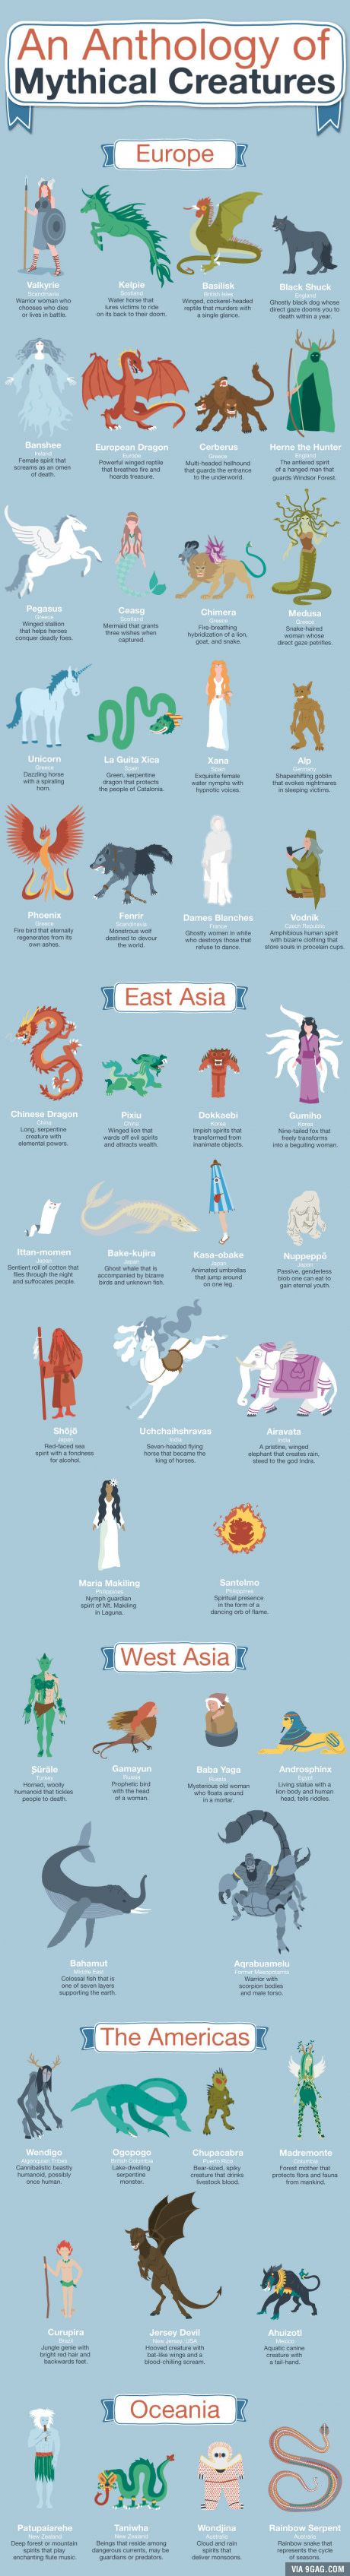 50 Mythical Creatures From Around the Globe